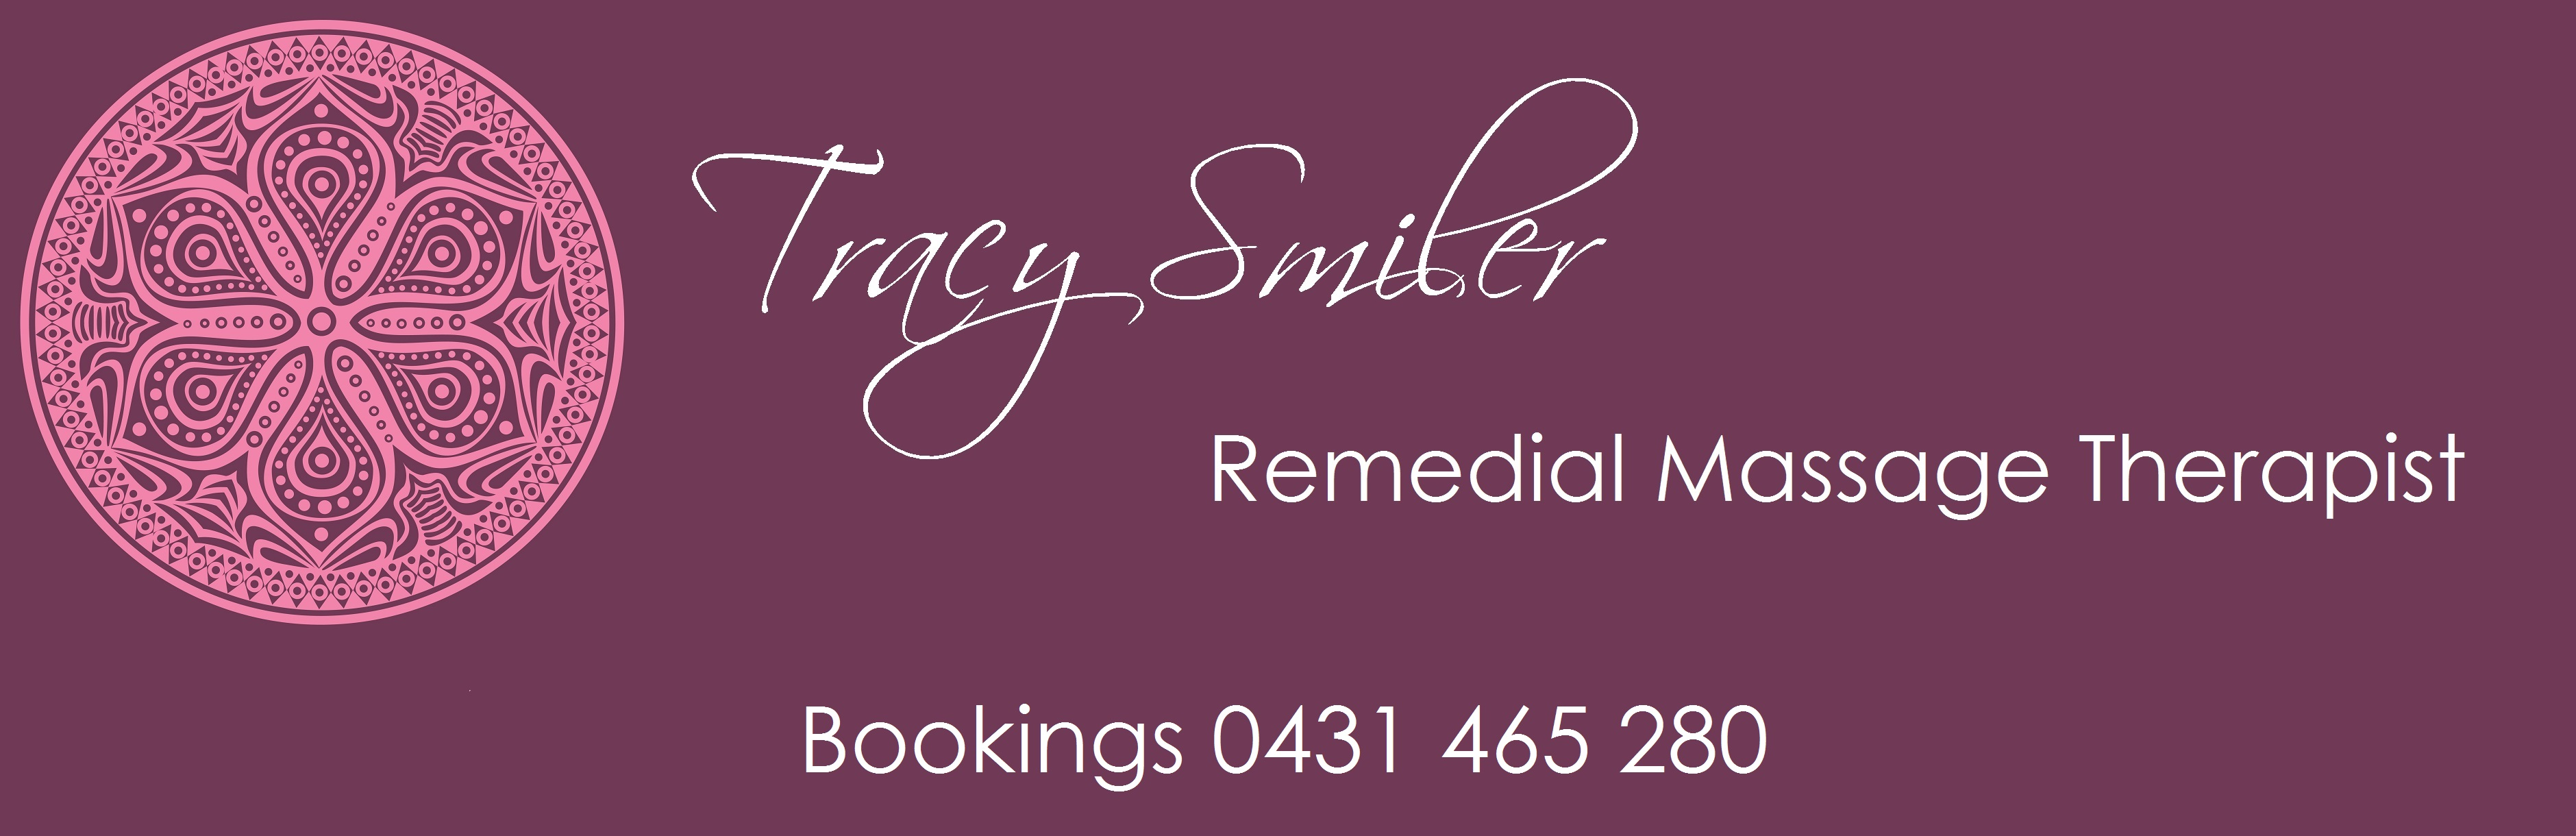 Tracy Smiler Massage